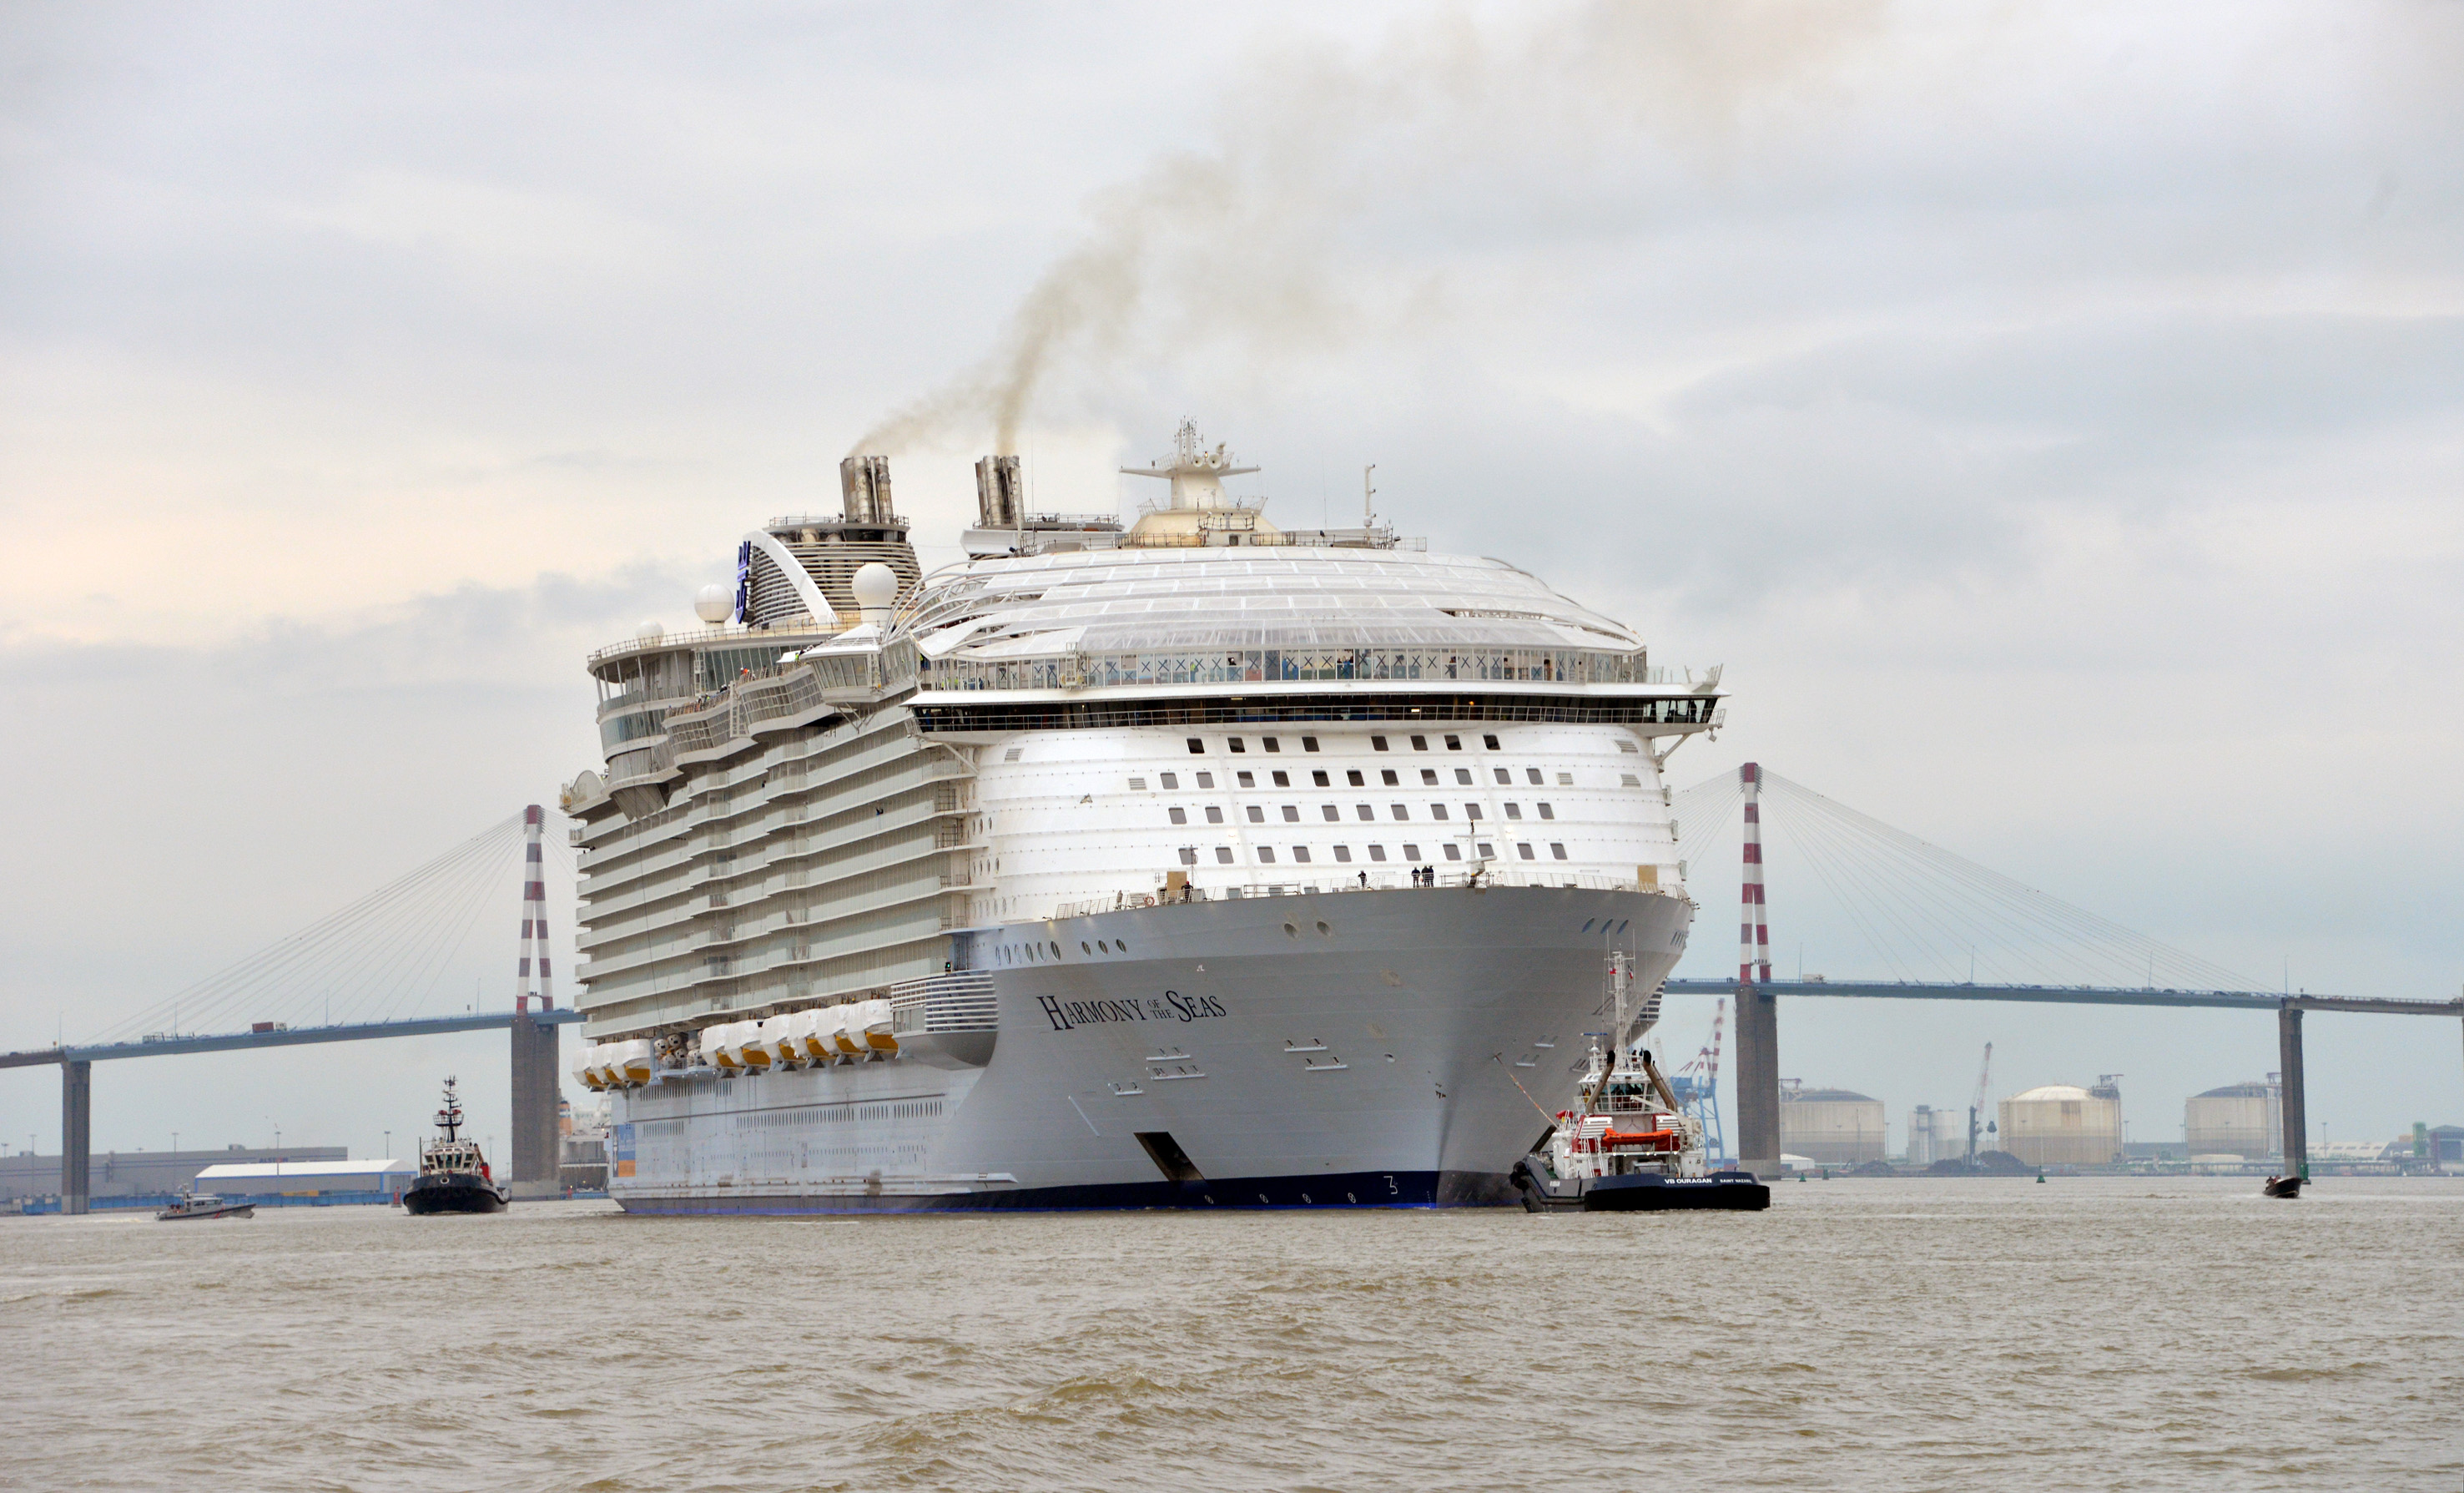 Royal Caribbean's Harmony of the Seas sets sail on a sea trial off the coast of France with a planned debut expected for the spring season.